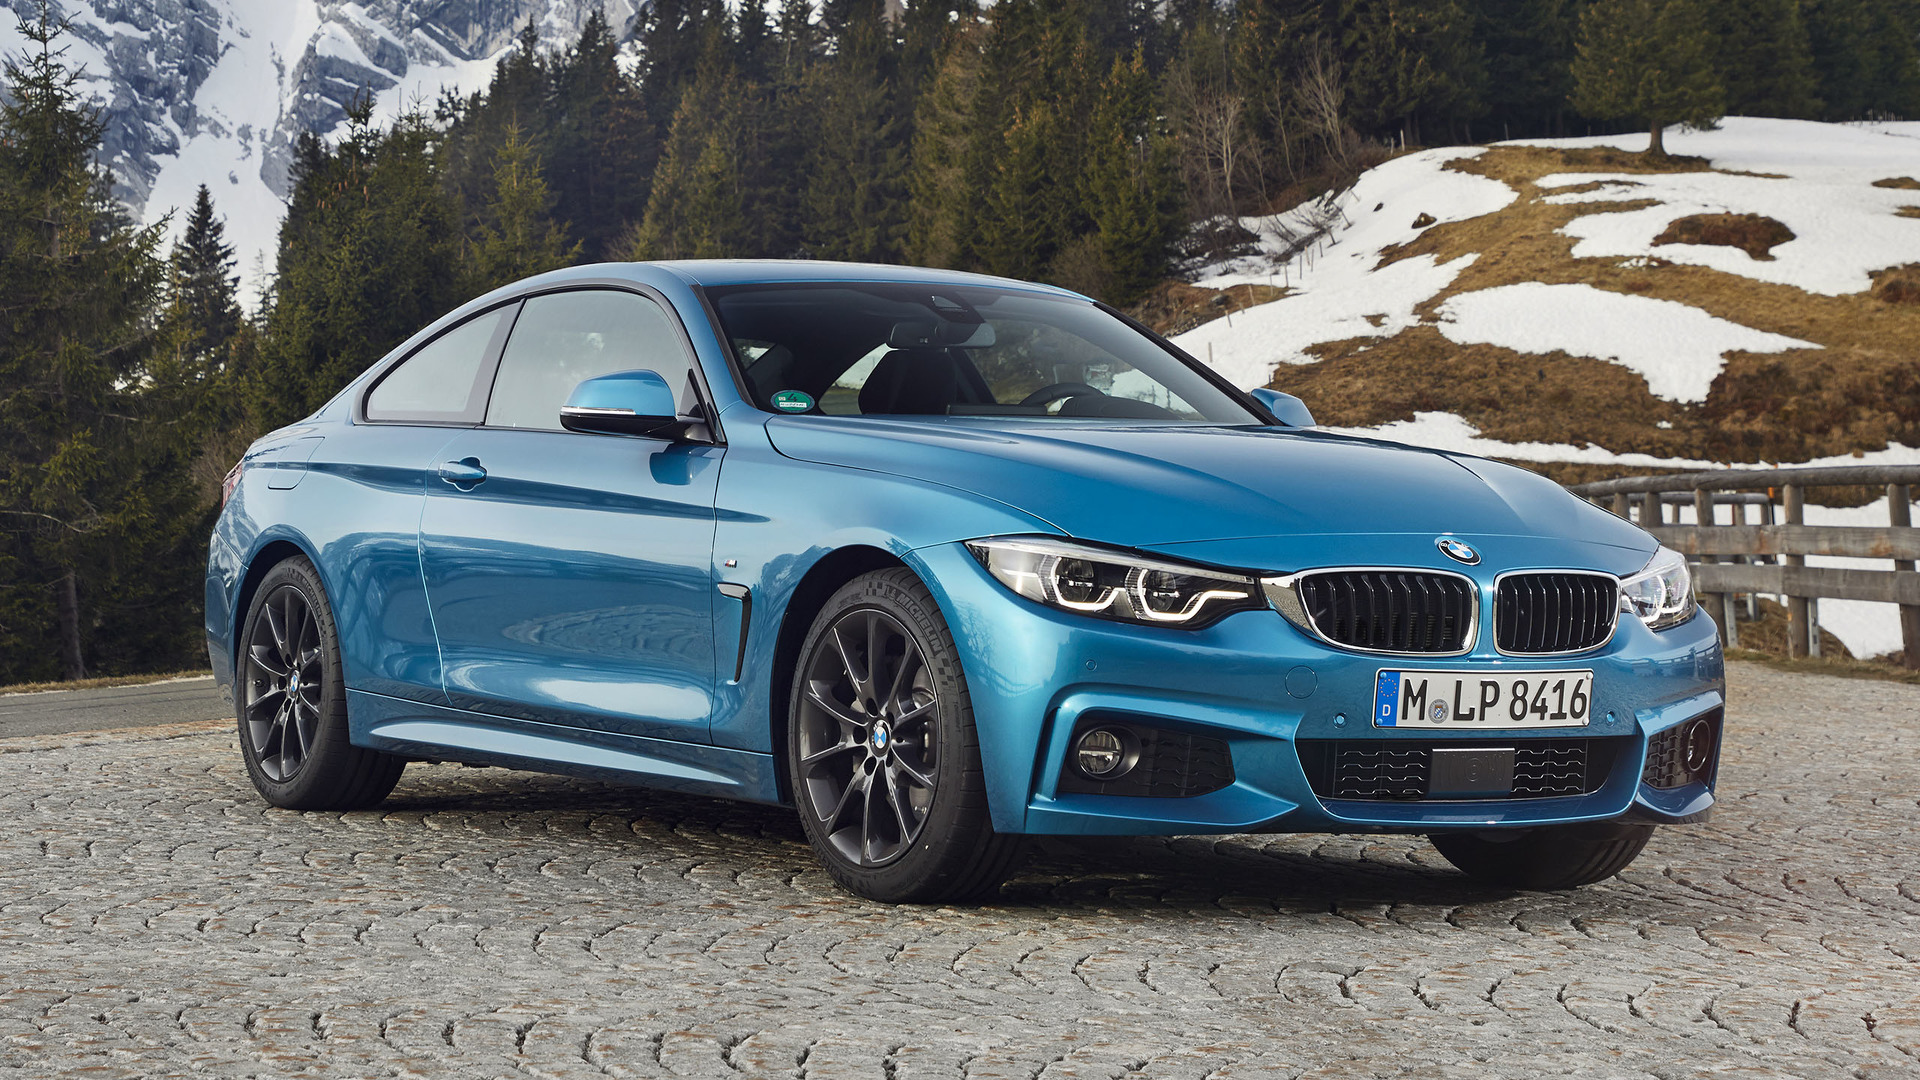 2018 BMW 440i Coupe Review: Minor Updates Make A Positive ...